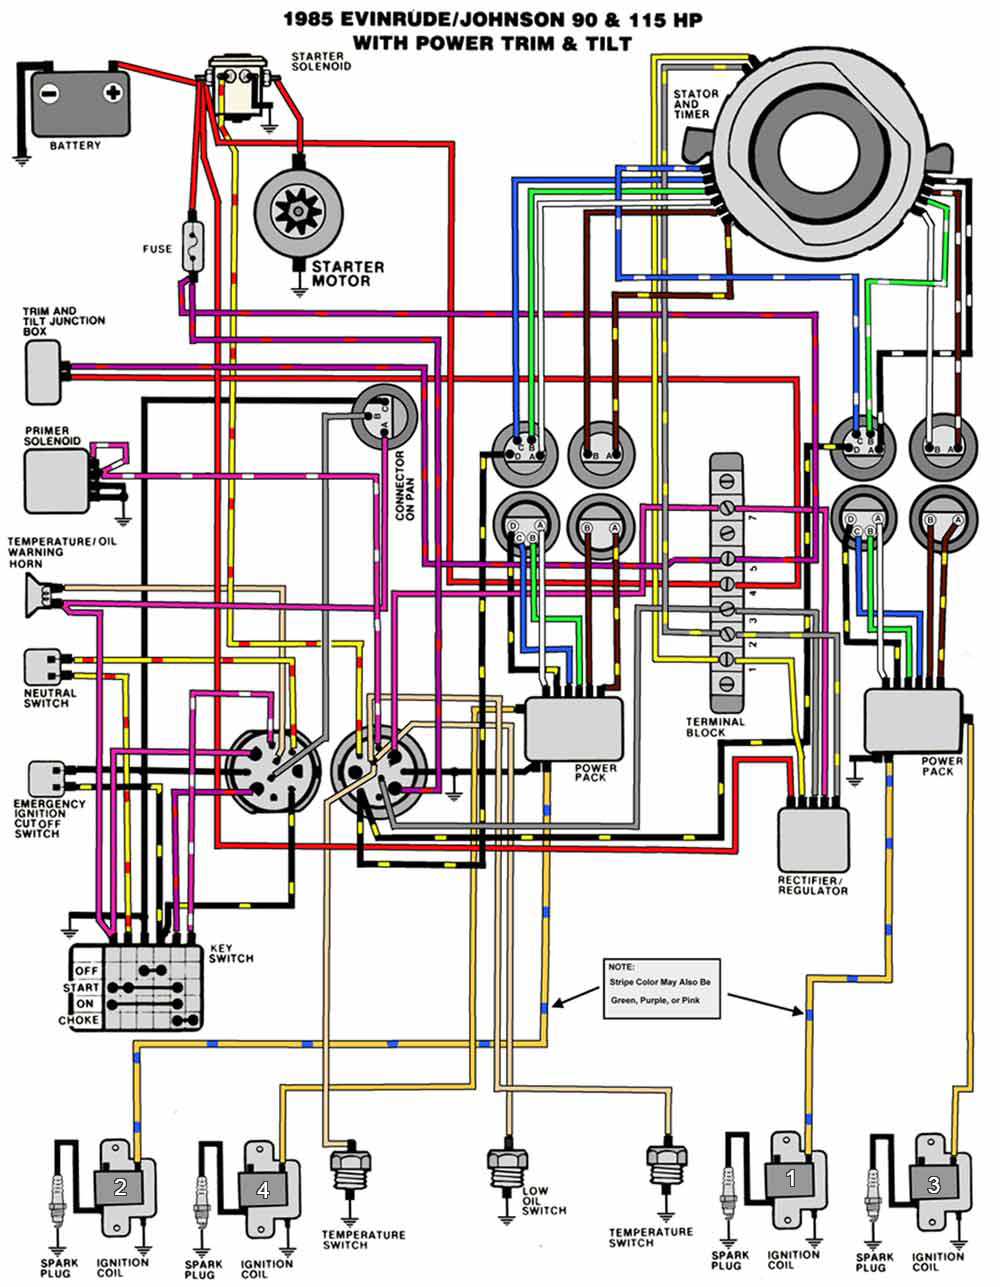 Evinrude Outboard Wiring Diagram - 12.11.danishfashion-mode.de • on mercury 115 wiring harness, mercury 90 wiring harness, mercury smartcraft wiring harness, ranger wiring harness, mercruiser wiring harness, mercury 850 wiring harness, dodge wiring harness, mercury control box wiring harness, yanmar wiring harness, mercury 500 wiring harness, mercury marine wire harness, ford wiring harness, omc wiring harness, minn kota trolling motor wiring harness, pcm wiring harness, stratos wiring harness, verado wiring harness, mercury optimax wiring harness, glastron wiring harness, mercury mariner wiring harness,